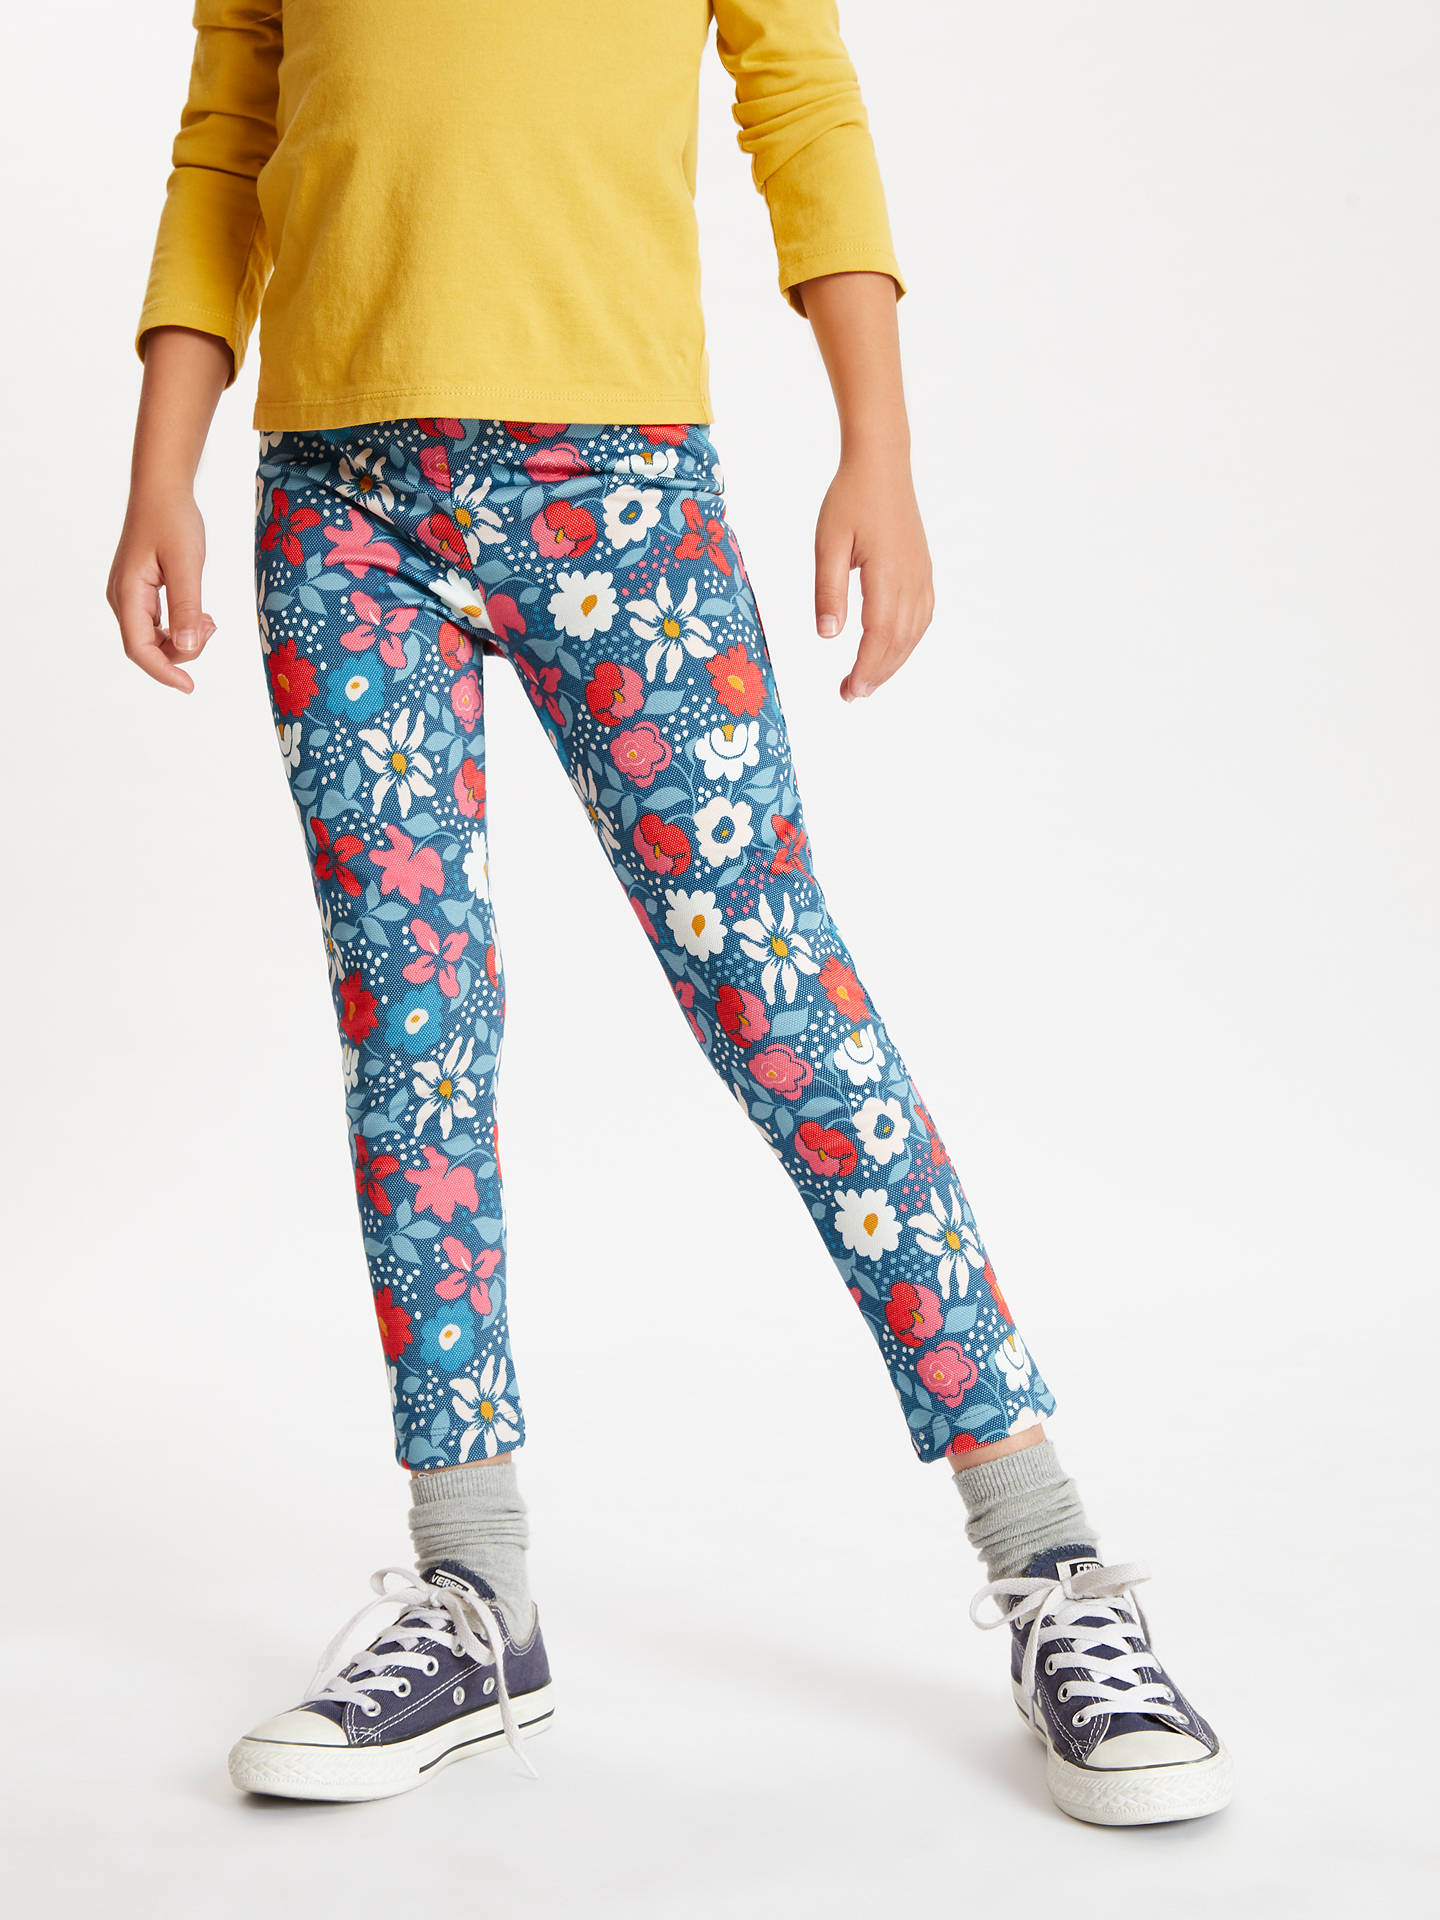 BuyJohn Lewis & Partners Girls' Floral Print Leggings, Teal, 8 years Online at johnlewis.com